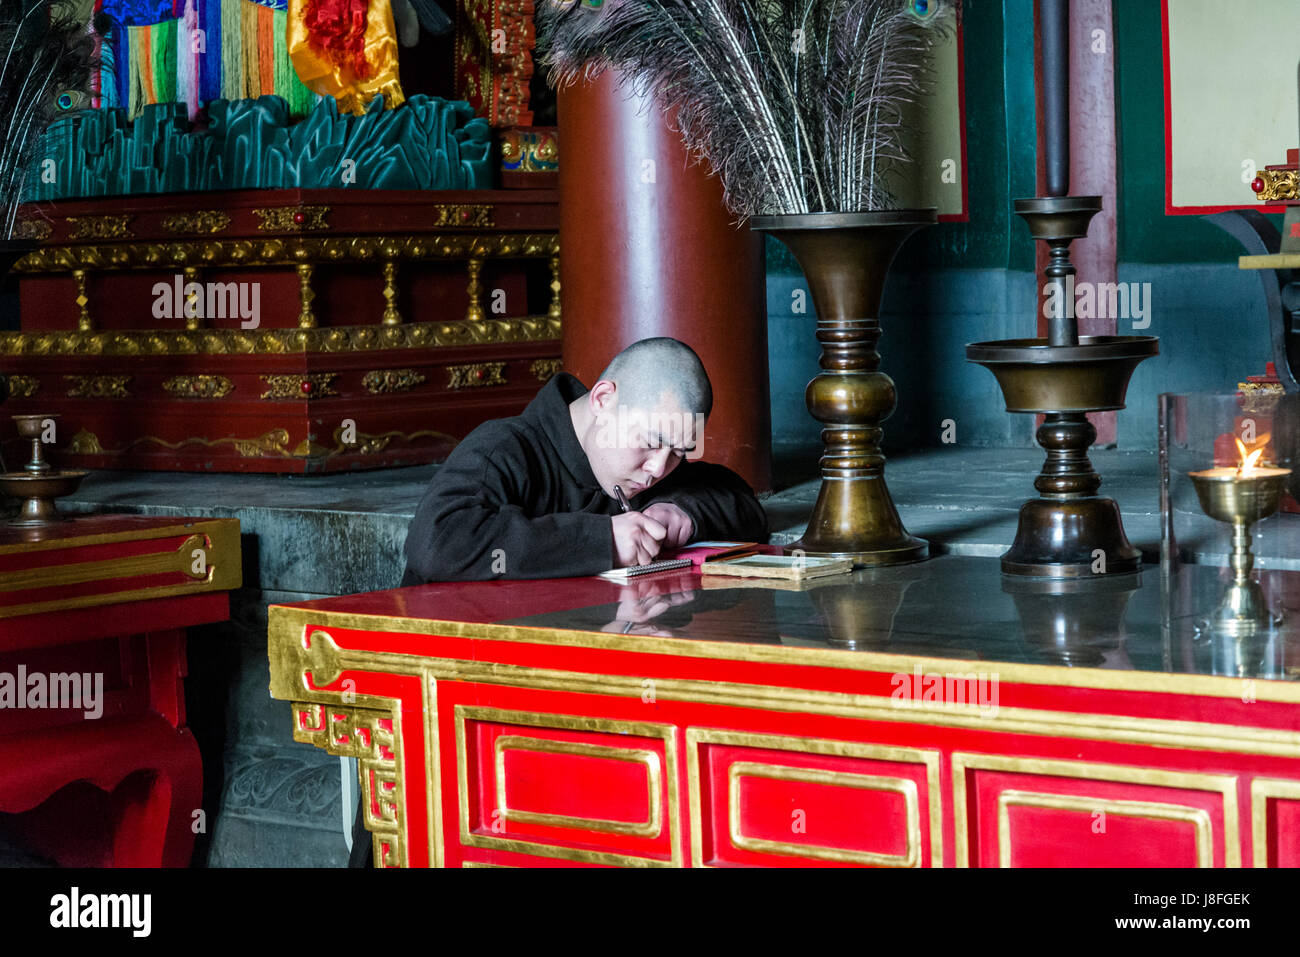 Monk writing, Lama Temple, Buddhist temple and monastery, Dongcheng District, Beijing, China - Stock Image